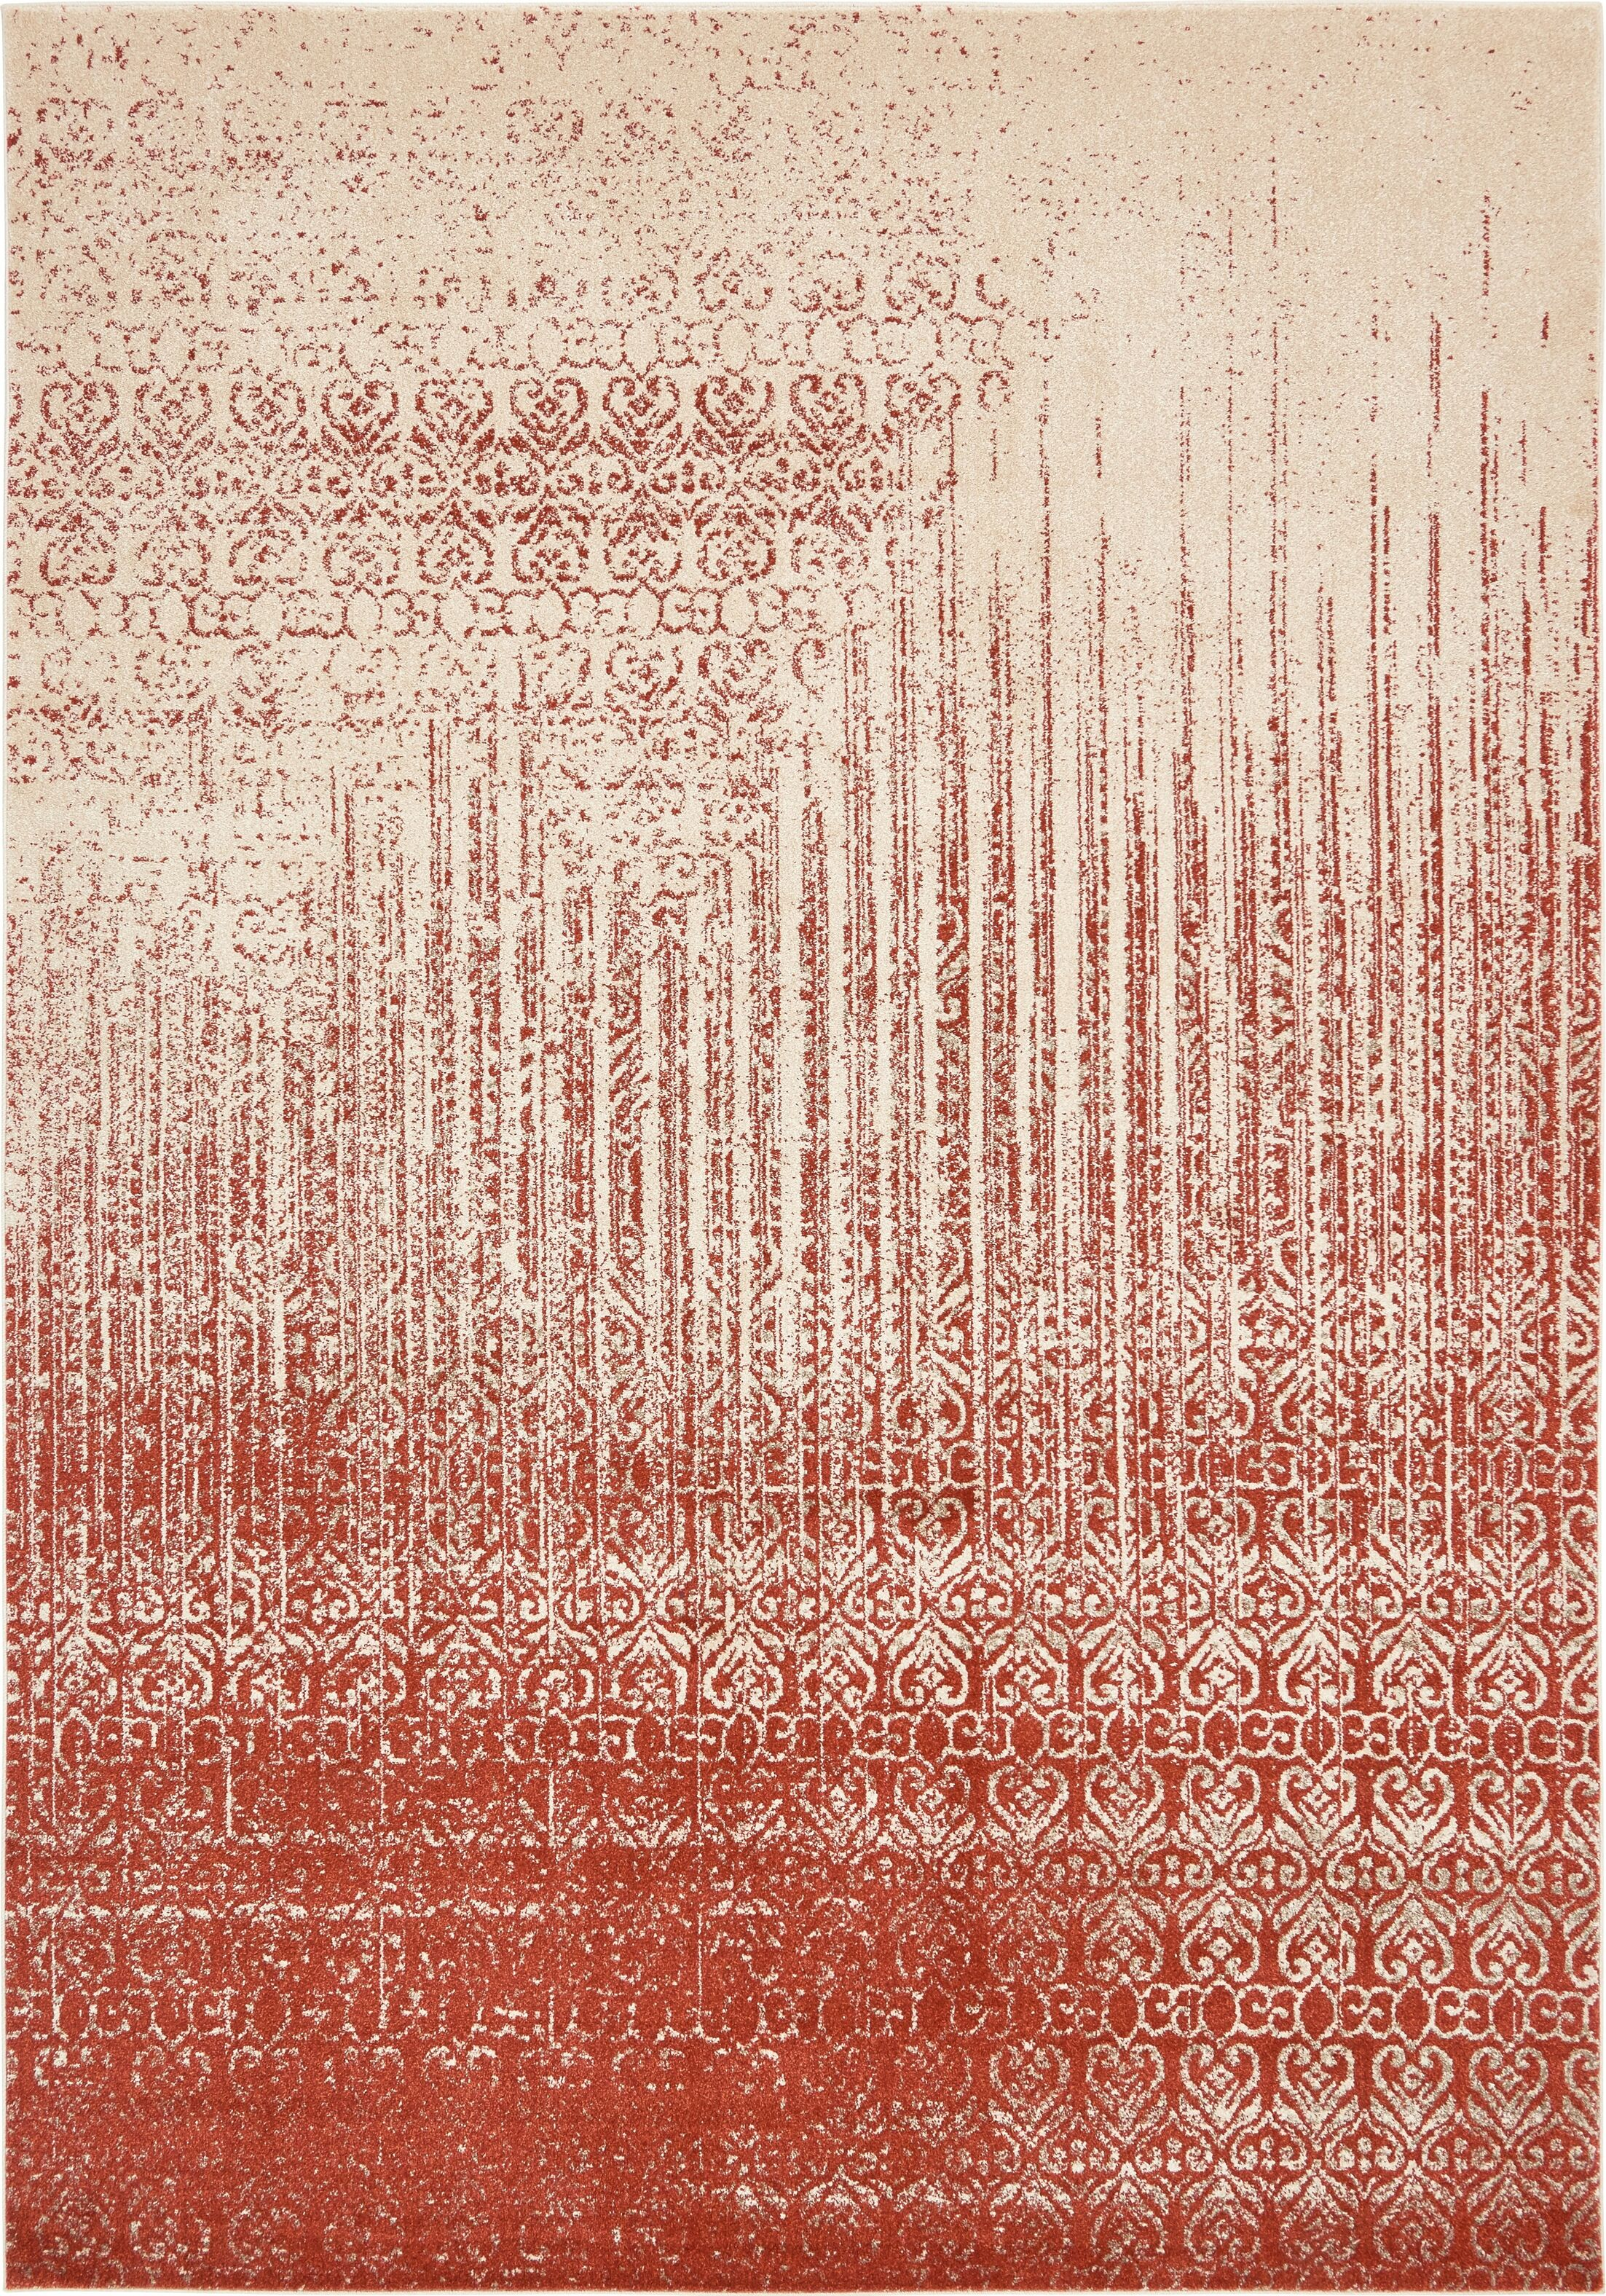 Dungan Red Area Rug Rug Size: Rectangle 8' x 11'4